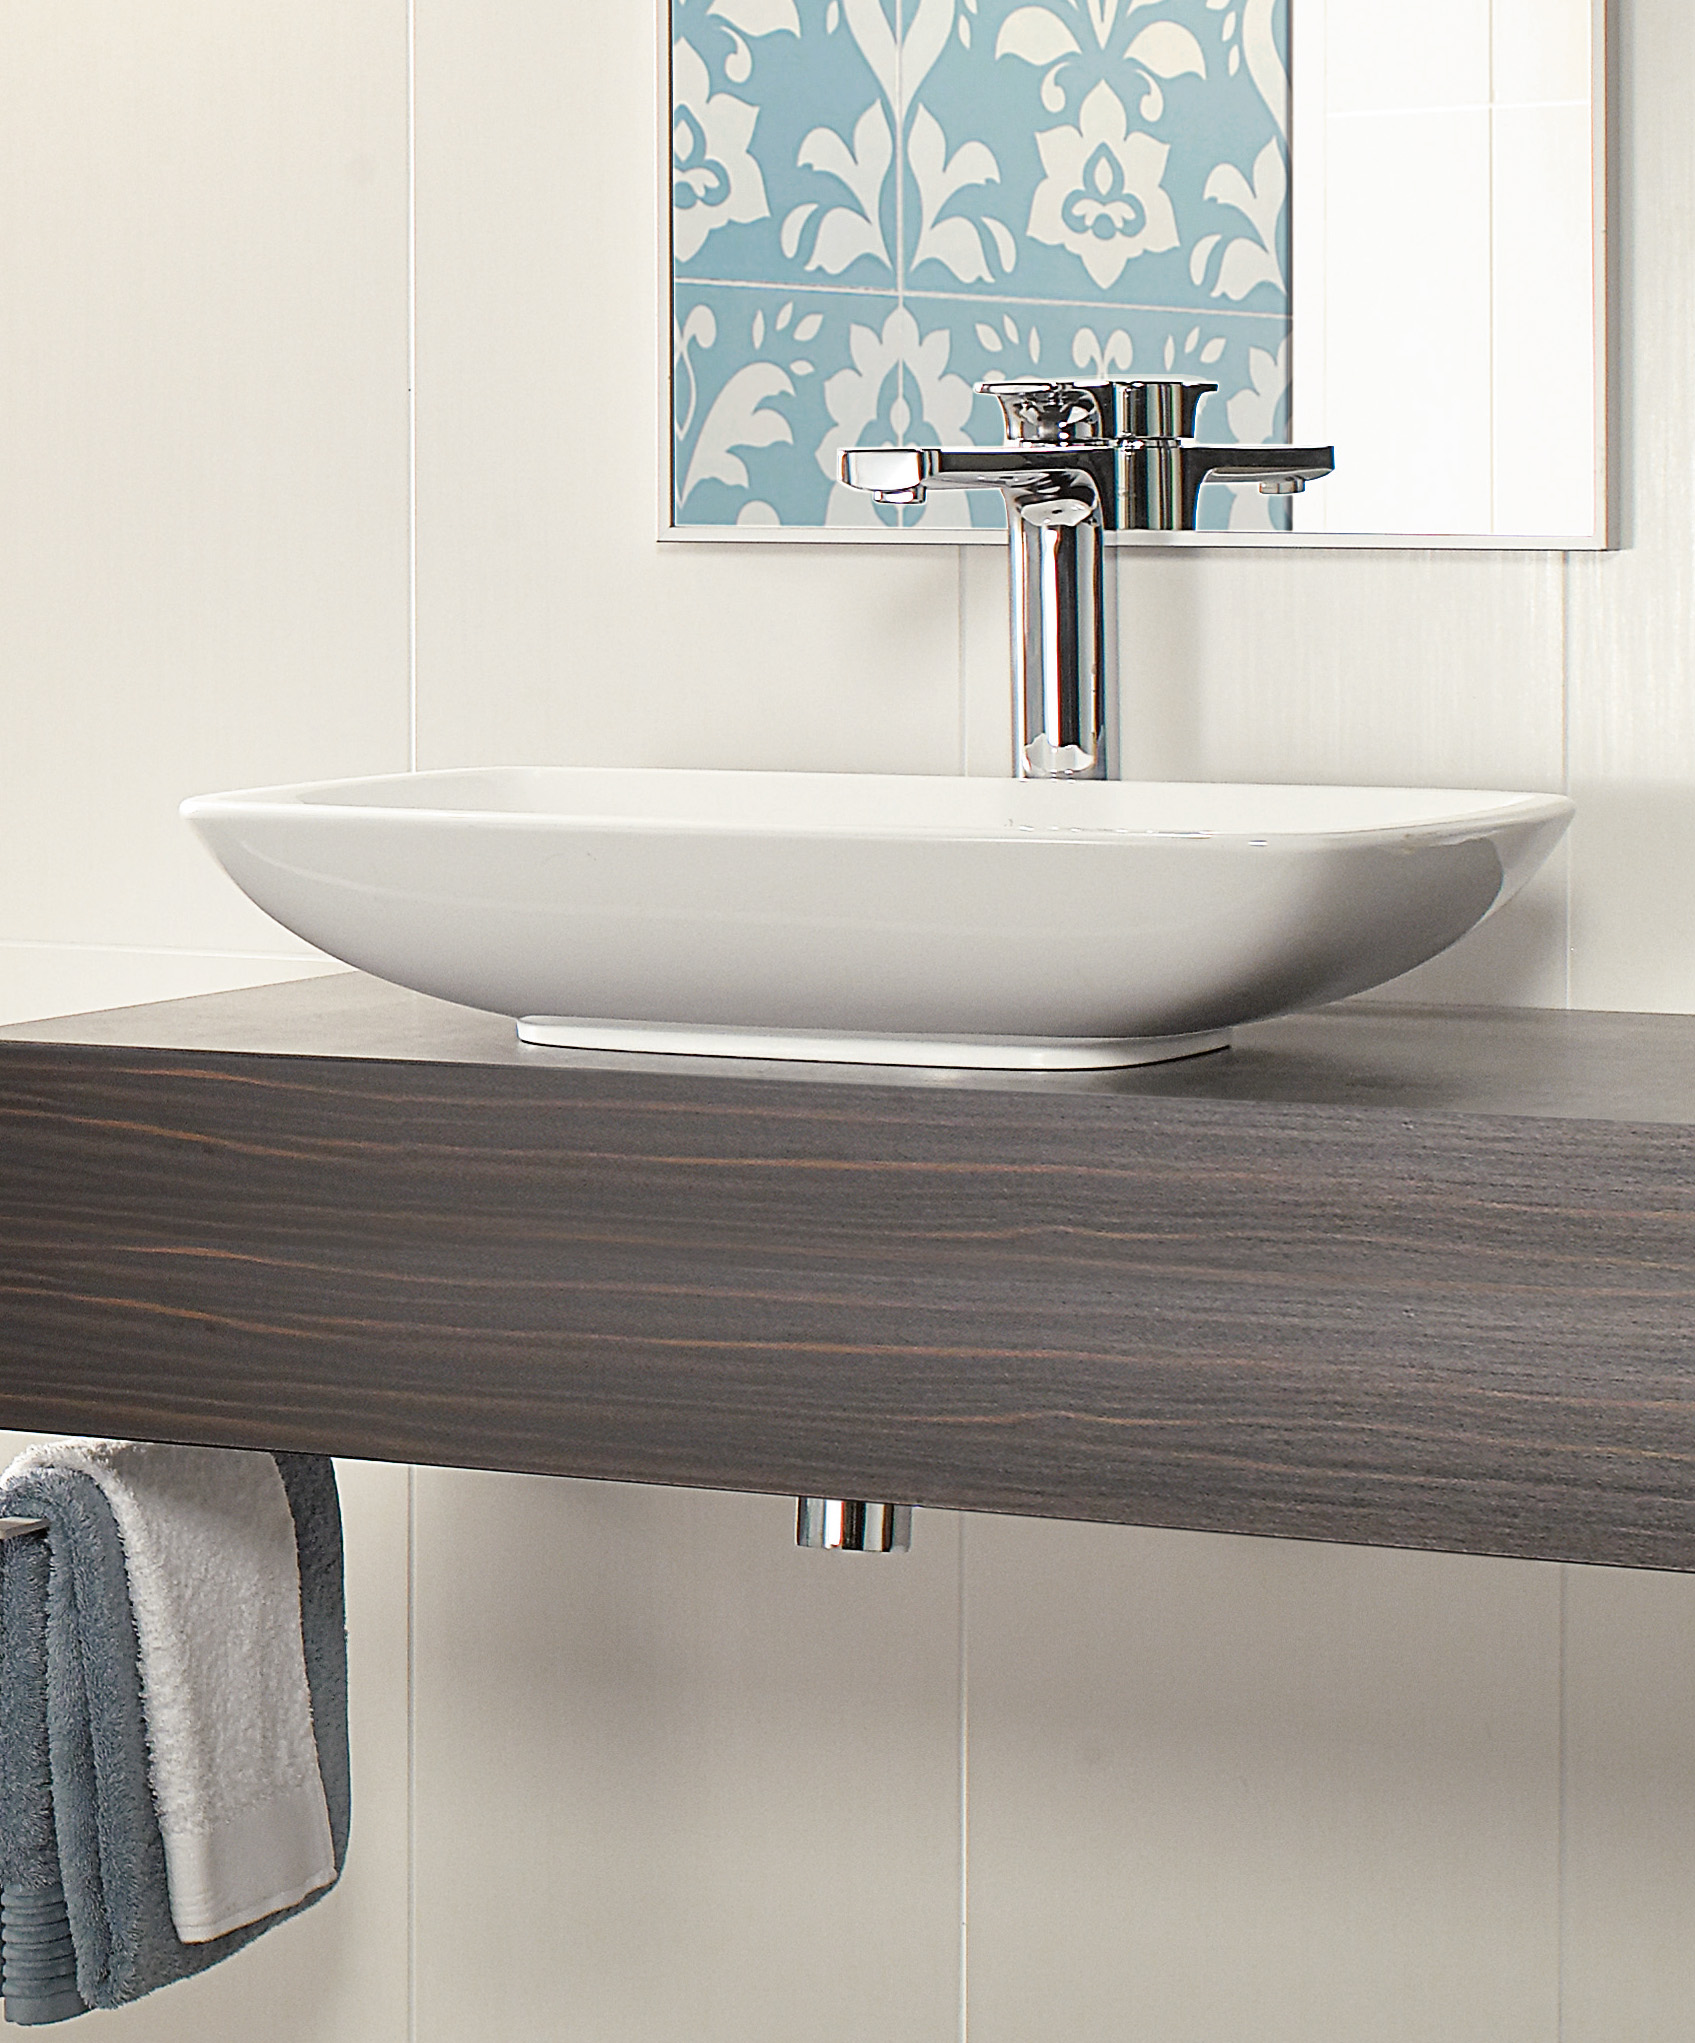 Loop & Friends Washbasin, Surface-mounted washbasin, Washbasins, Surface-mounted washbasins